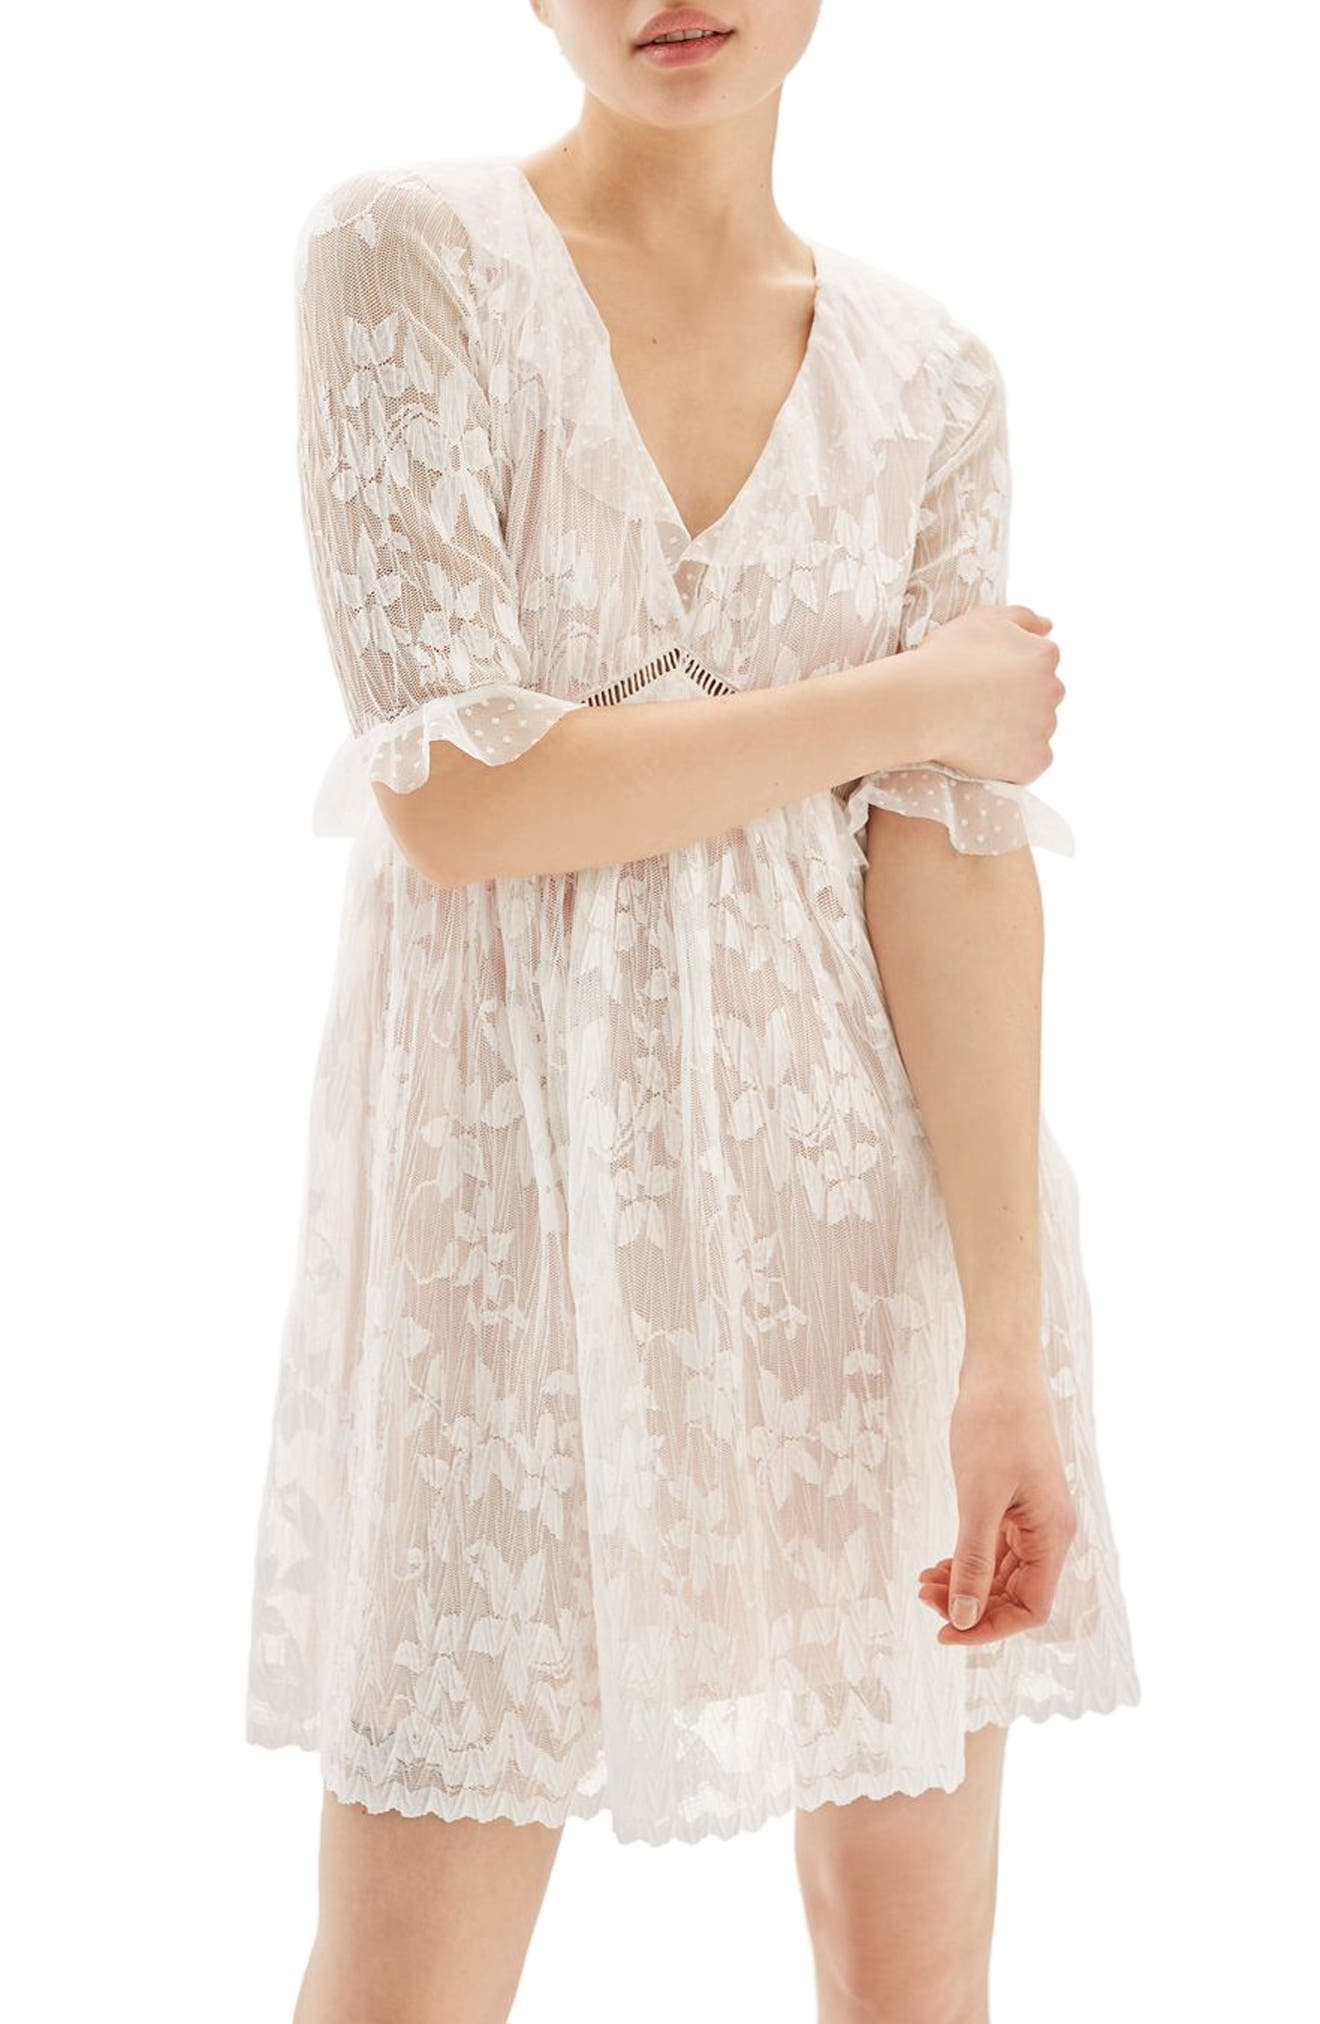 Topshop Ruffle Trim Lace Dress